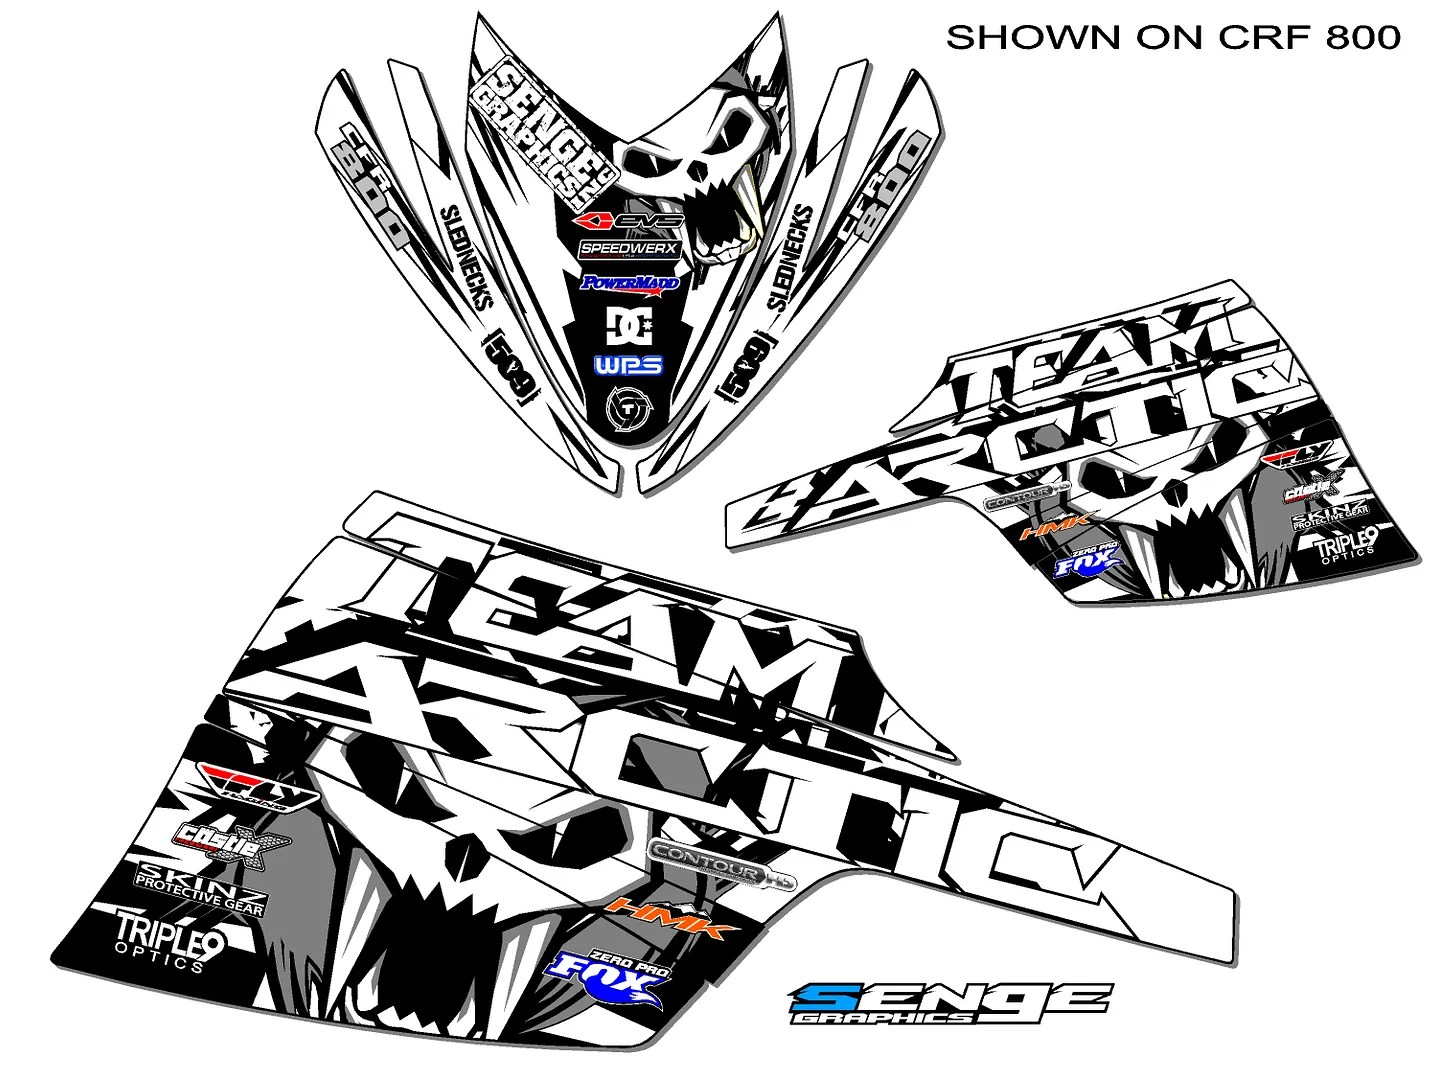 2012 2013 2014 ARCTIC CAT SNOPRO SNO PRO 600 GRAPHICS KIT